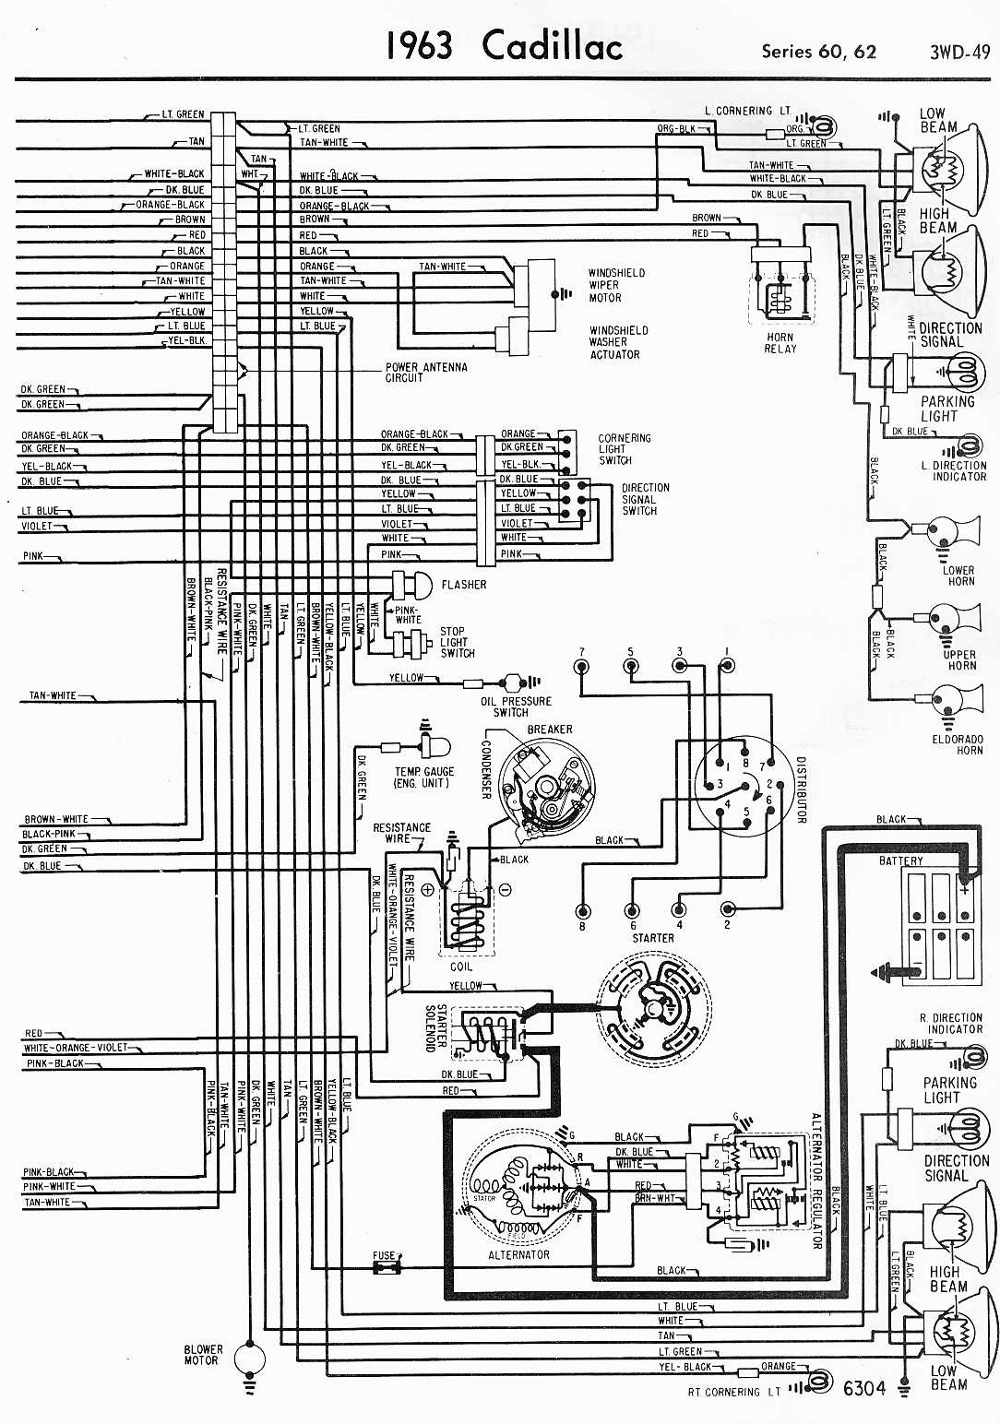 hight resolution of bose stereo wiring diagram 93 cadillac wiring library1959 cadillac radio diagram 1959 get free image about